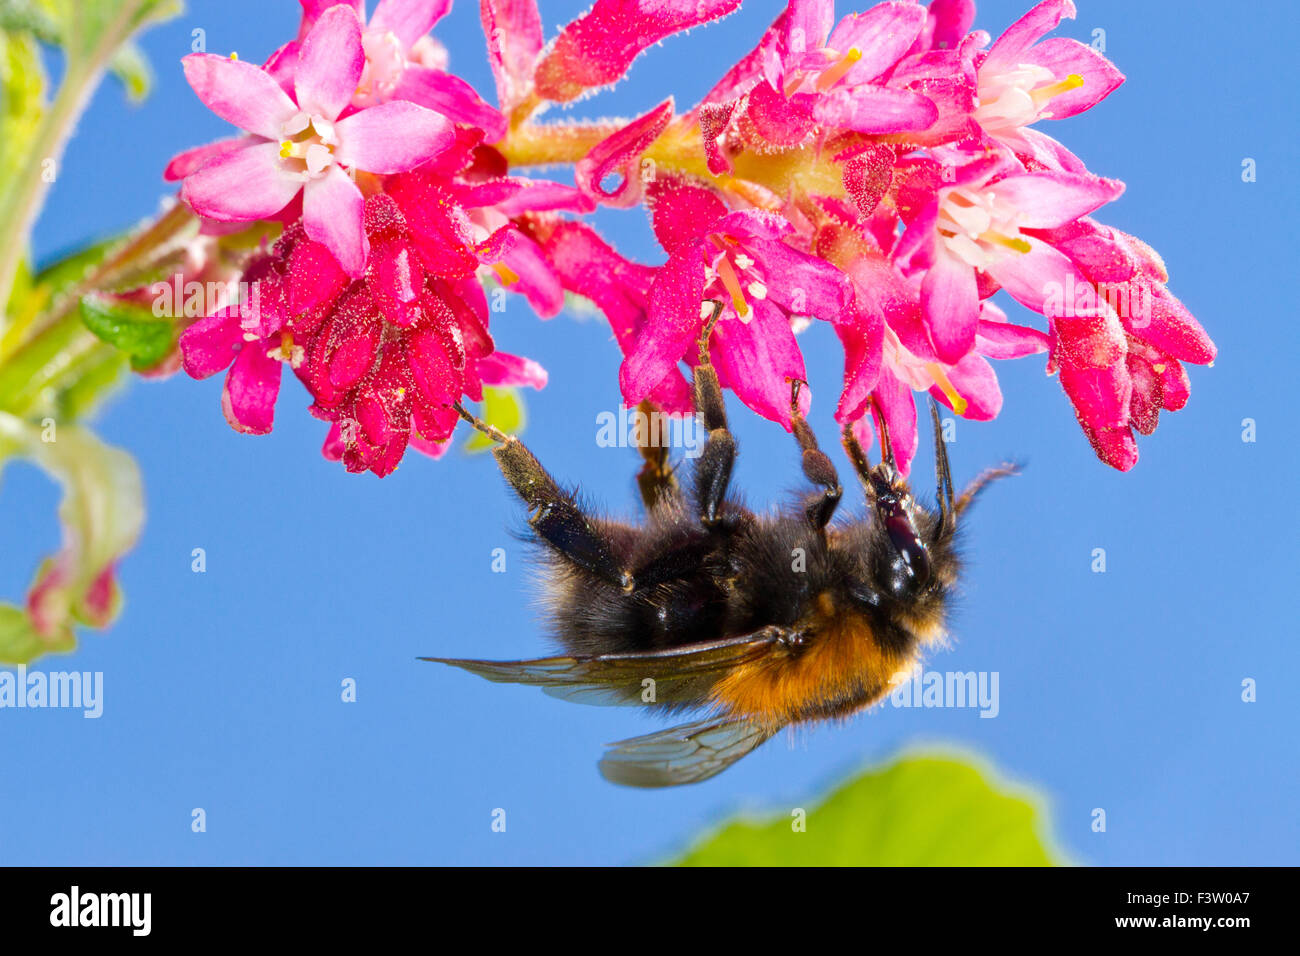 Tree Bumblebee (Bombus hypnorum) queen feeding on Red-flowering currant  (Ribes sanguineum) in a garden. Powys, - Stock Image